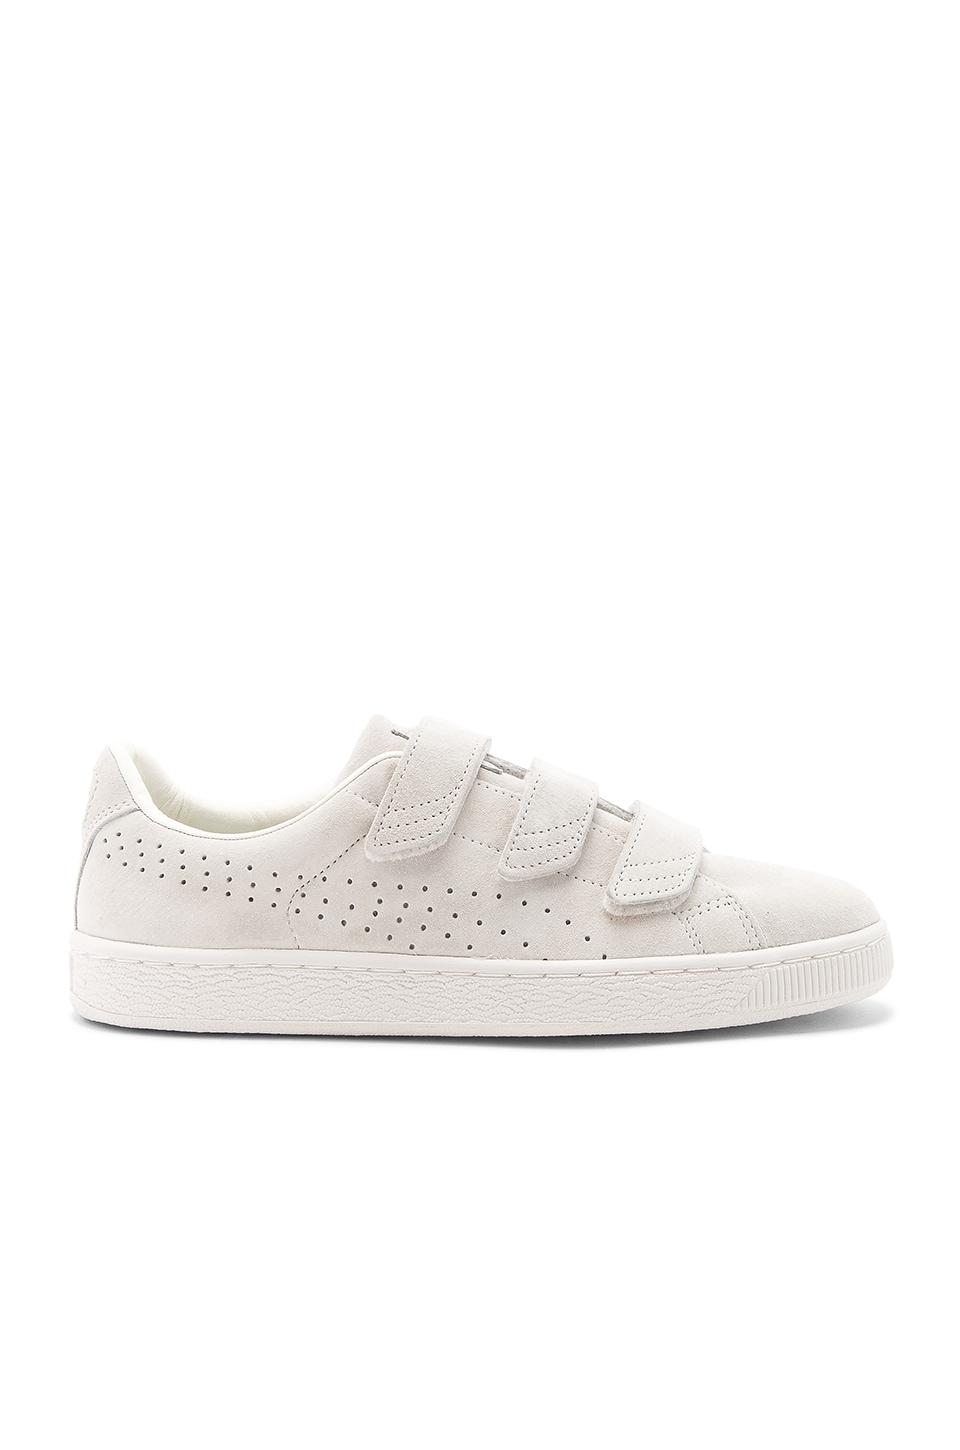 Basket Strap Soft Premium by Puma Select